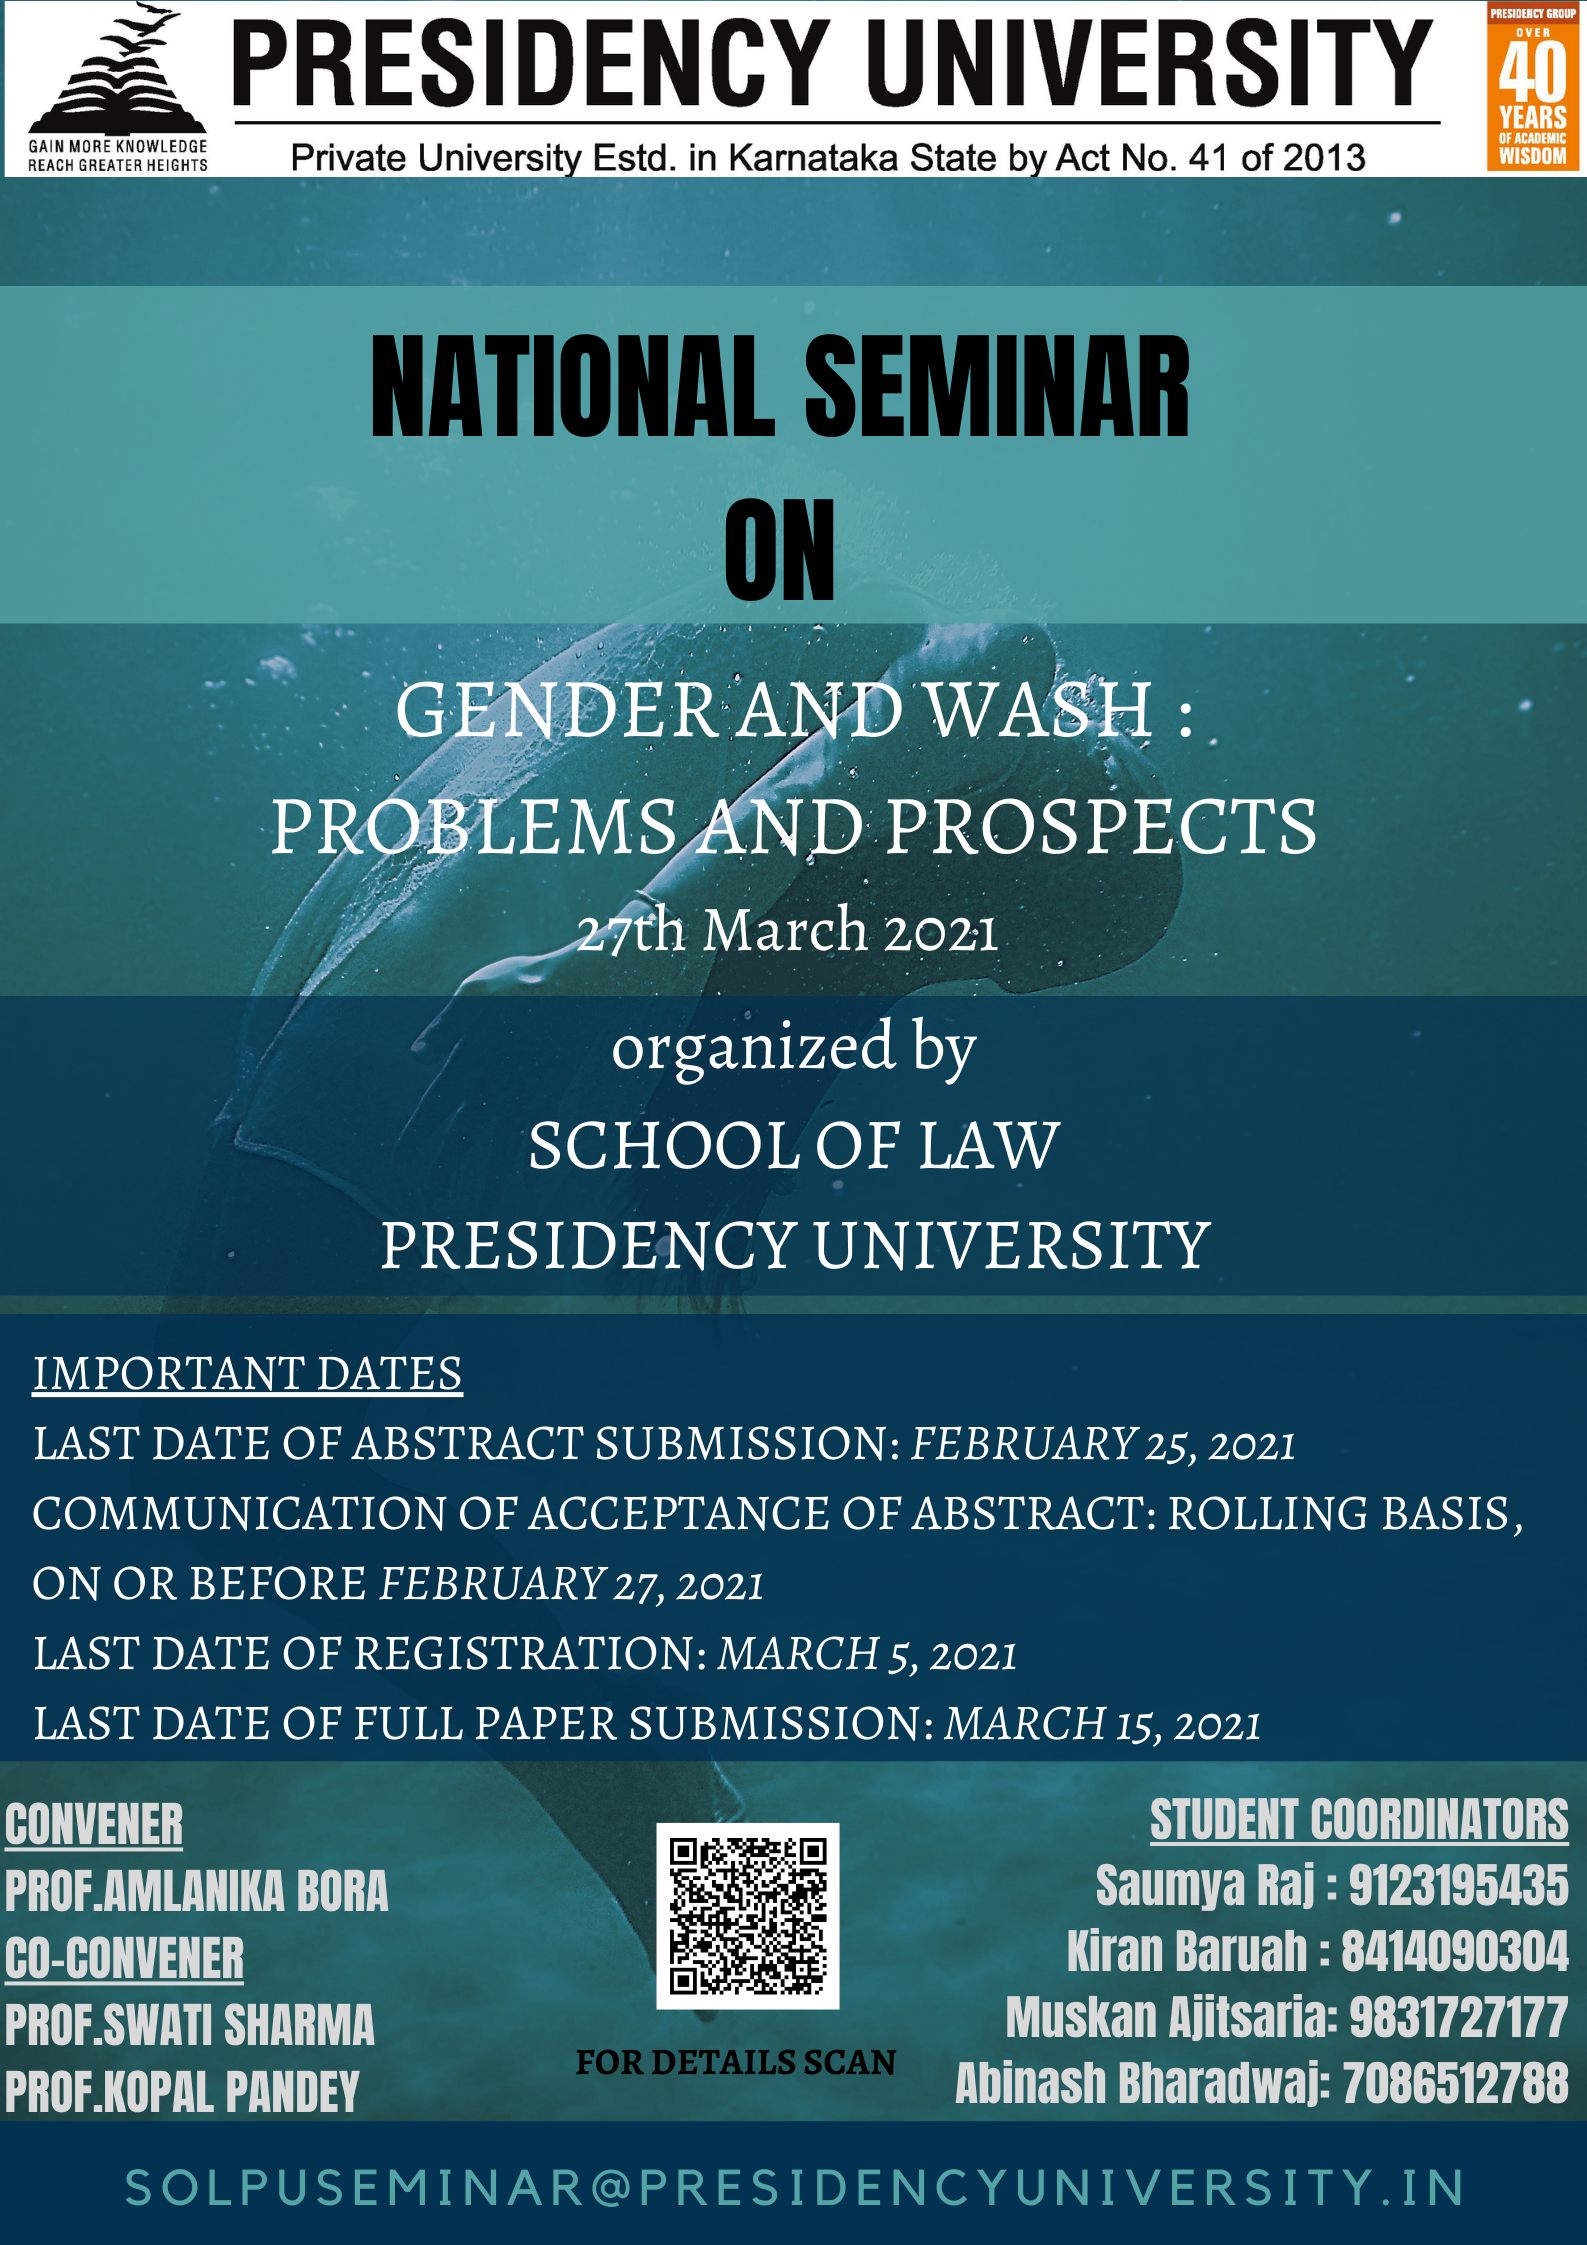 "National Seminar on ""Gender and Wash: Problems and Prospects"" on March 27, 2021, by Presidency University."